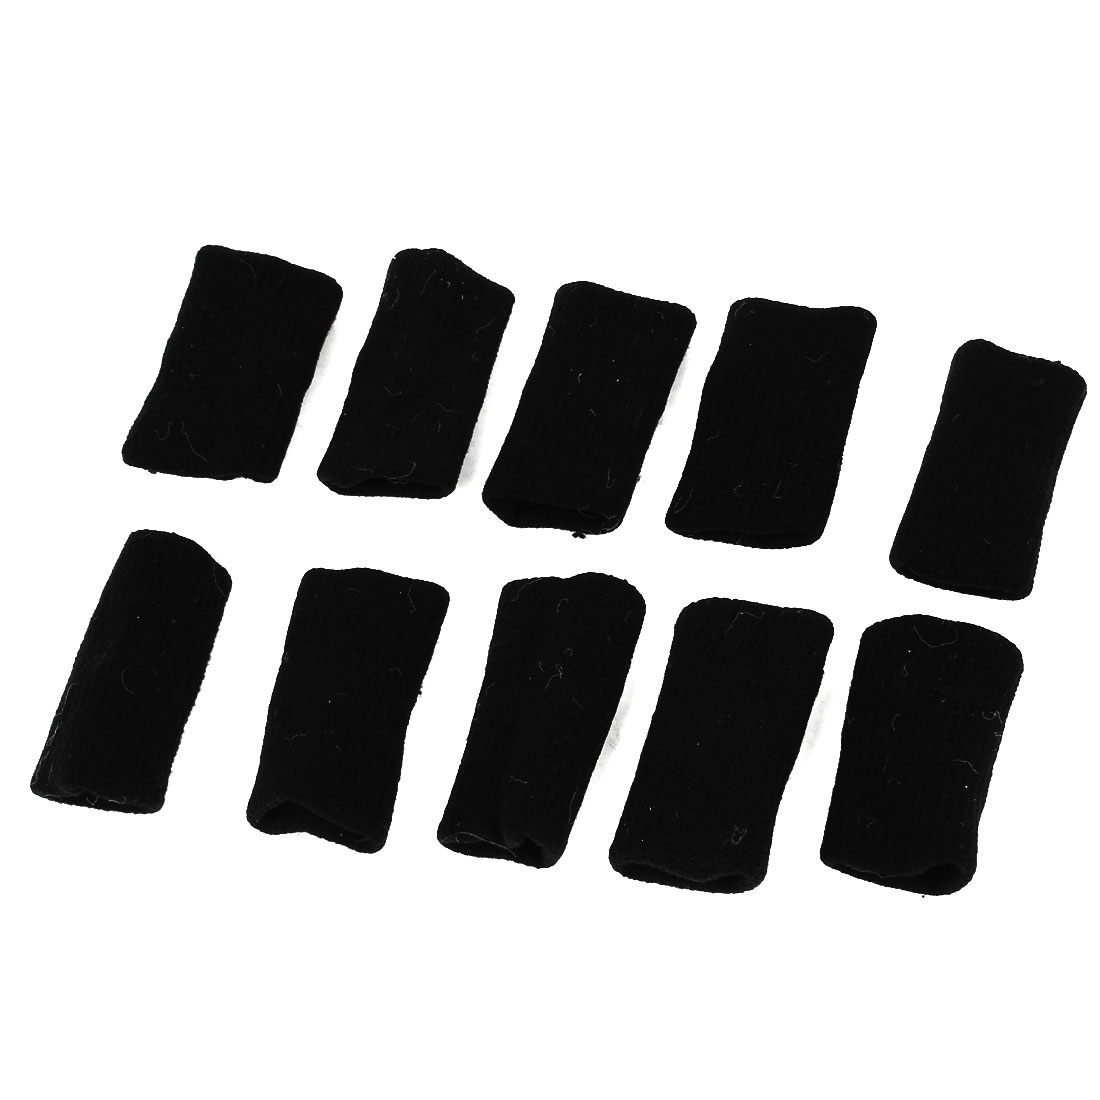 Unique Bargains 10 Pcs Outdoors Sports Training Stretchy Finger Sleeve Protector Guard